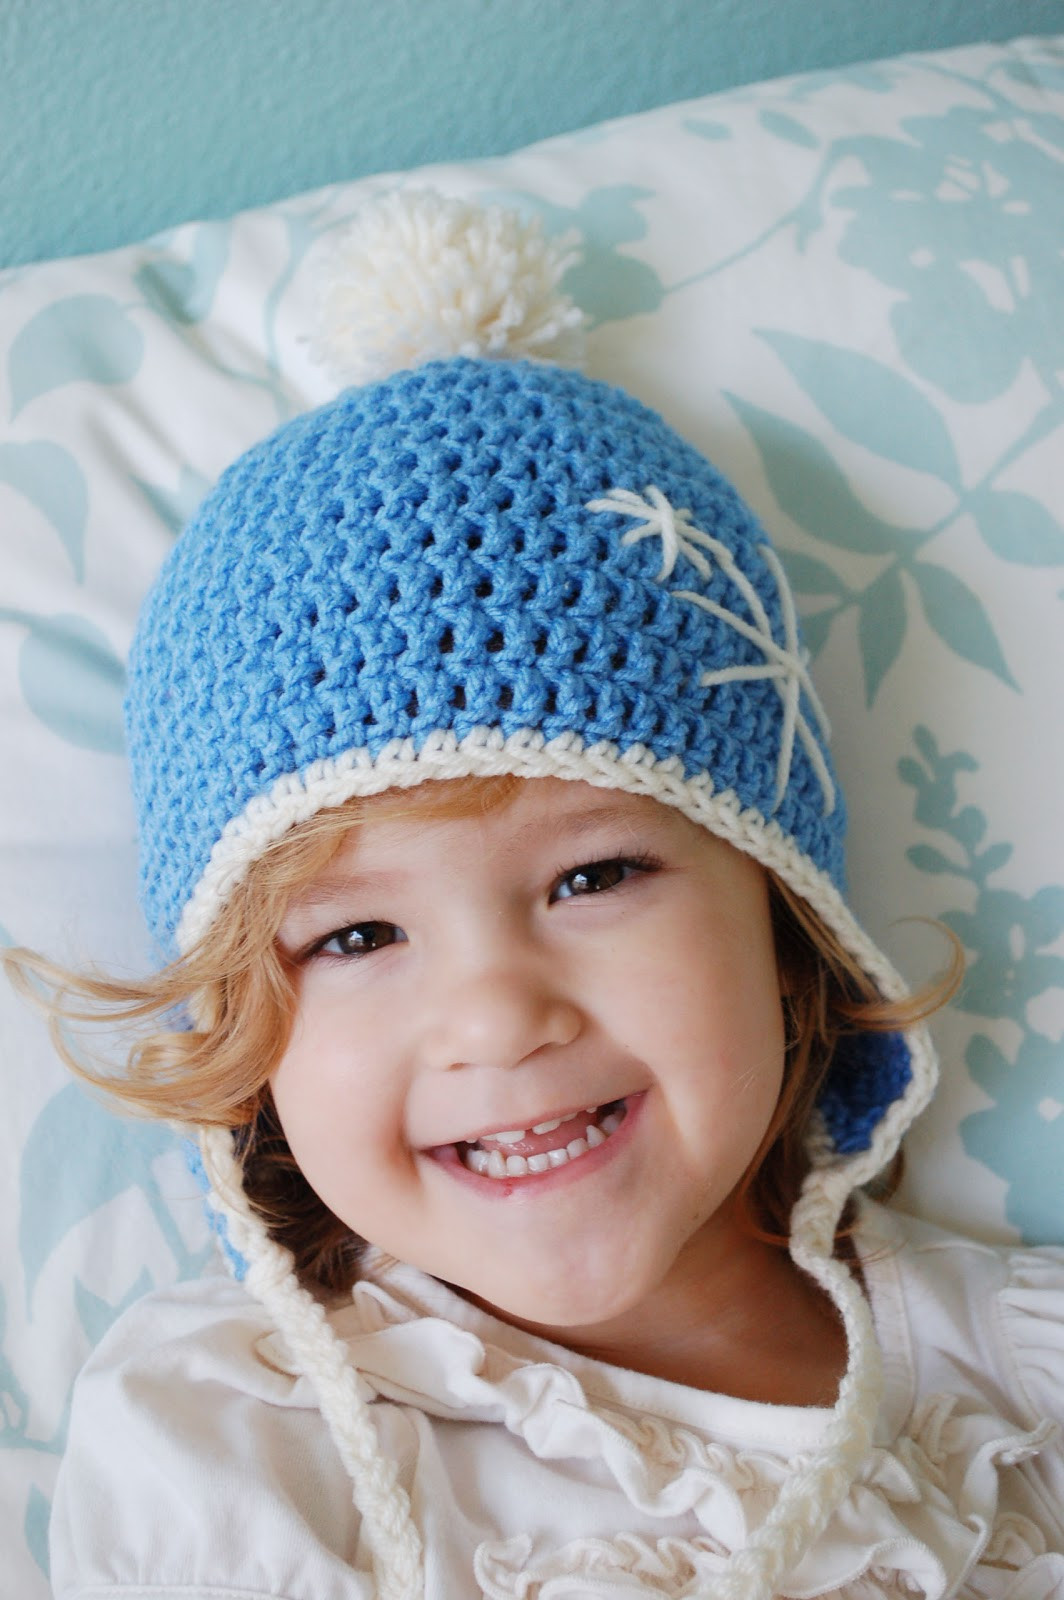 Crochet Child Hat Inspirational Free Crochet Patterns for Baby Hats with Ear Flaps Of Perfect 44 Pictures Crochet Child Hat